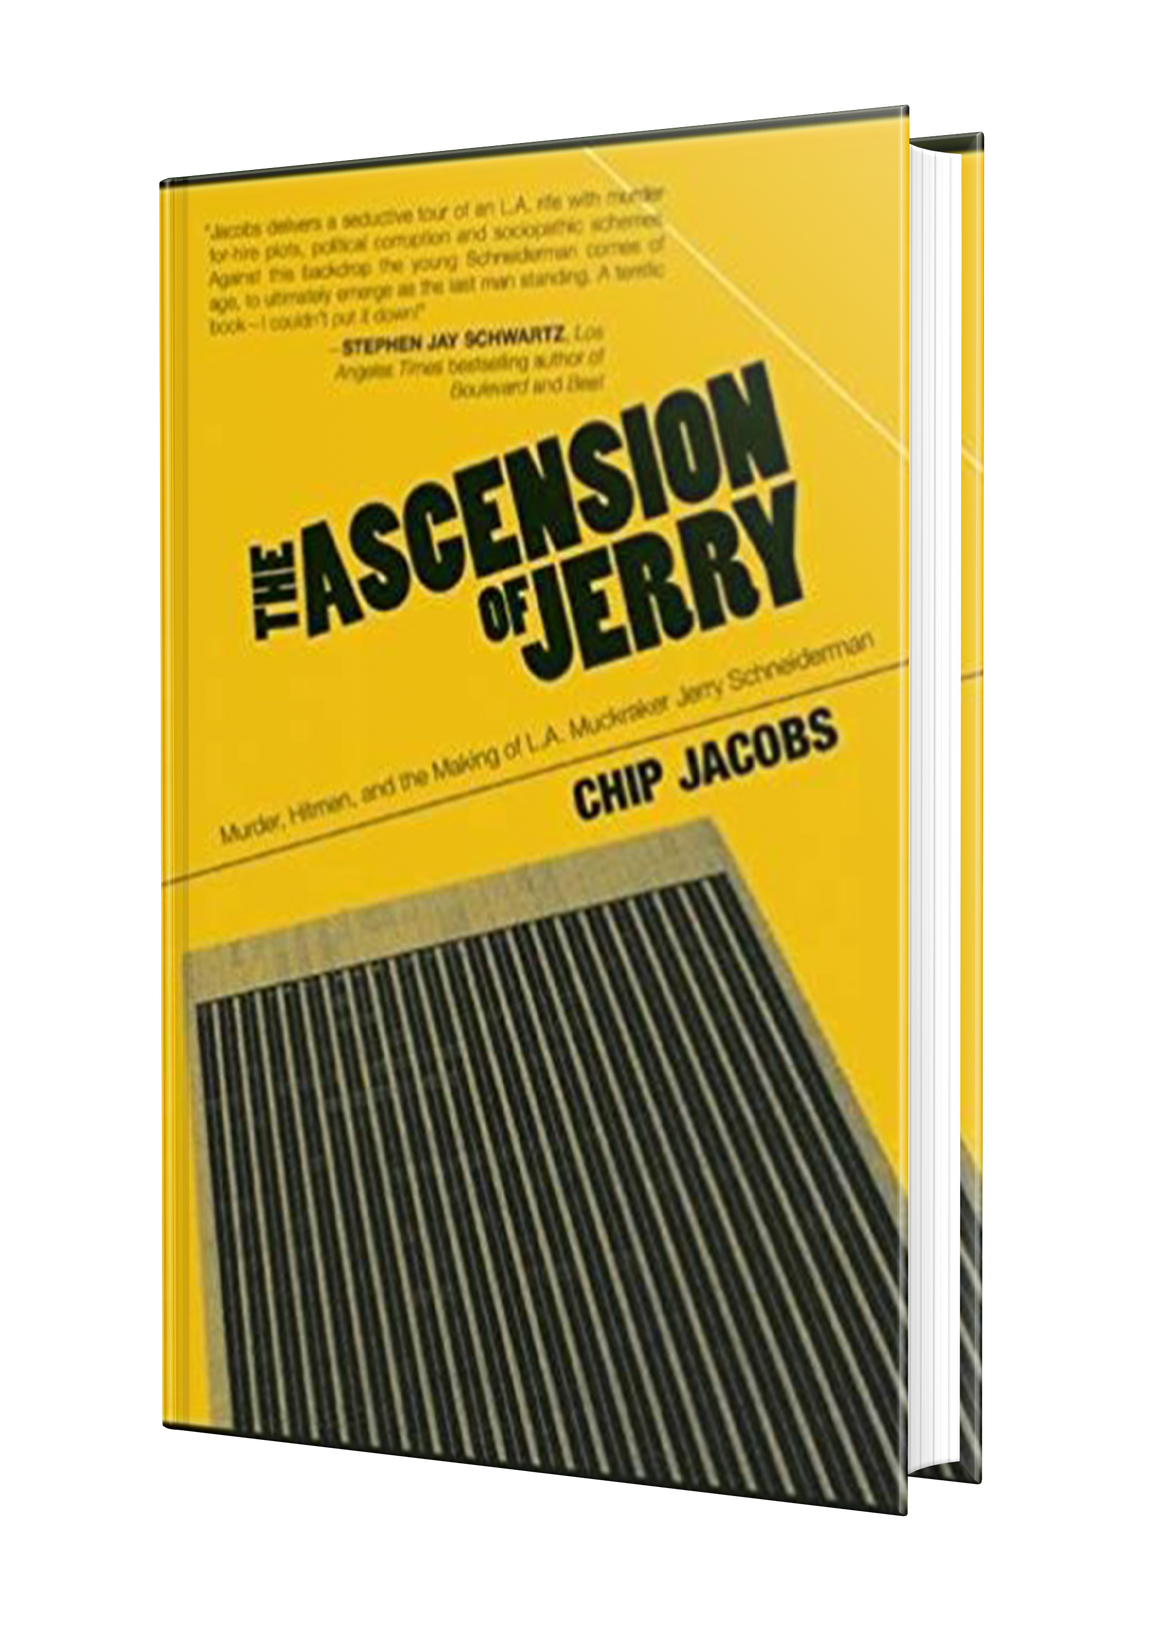 The Ascension of Jerry: Business Lies, Hitmen, and the Making of an L.A. Muckraker